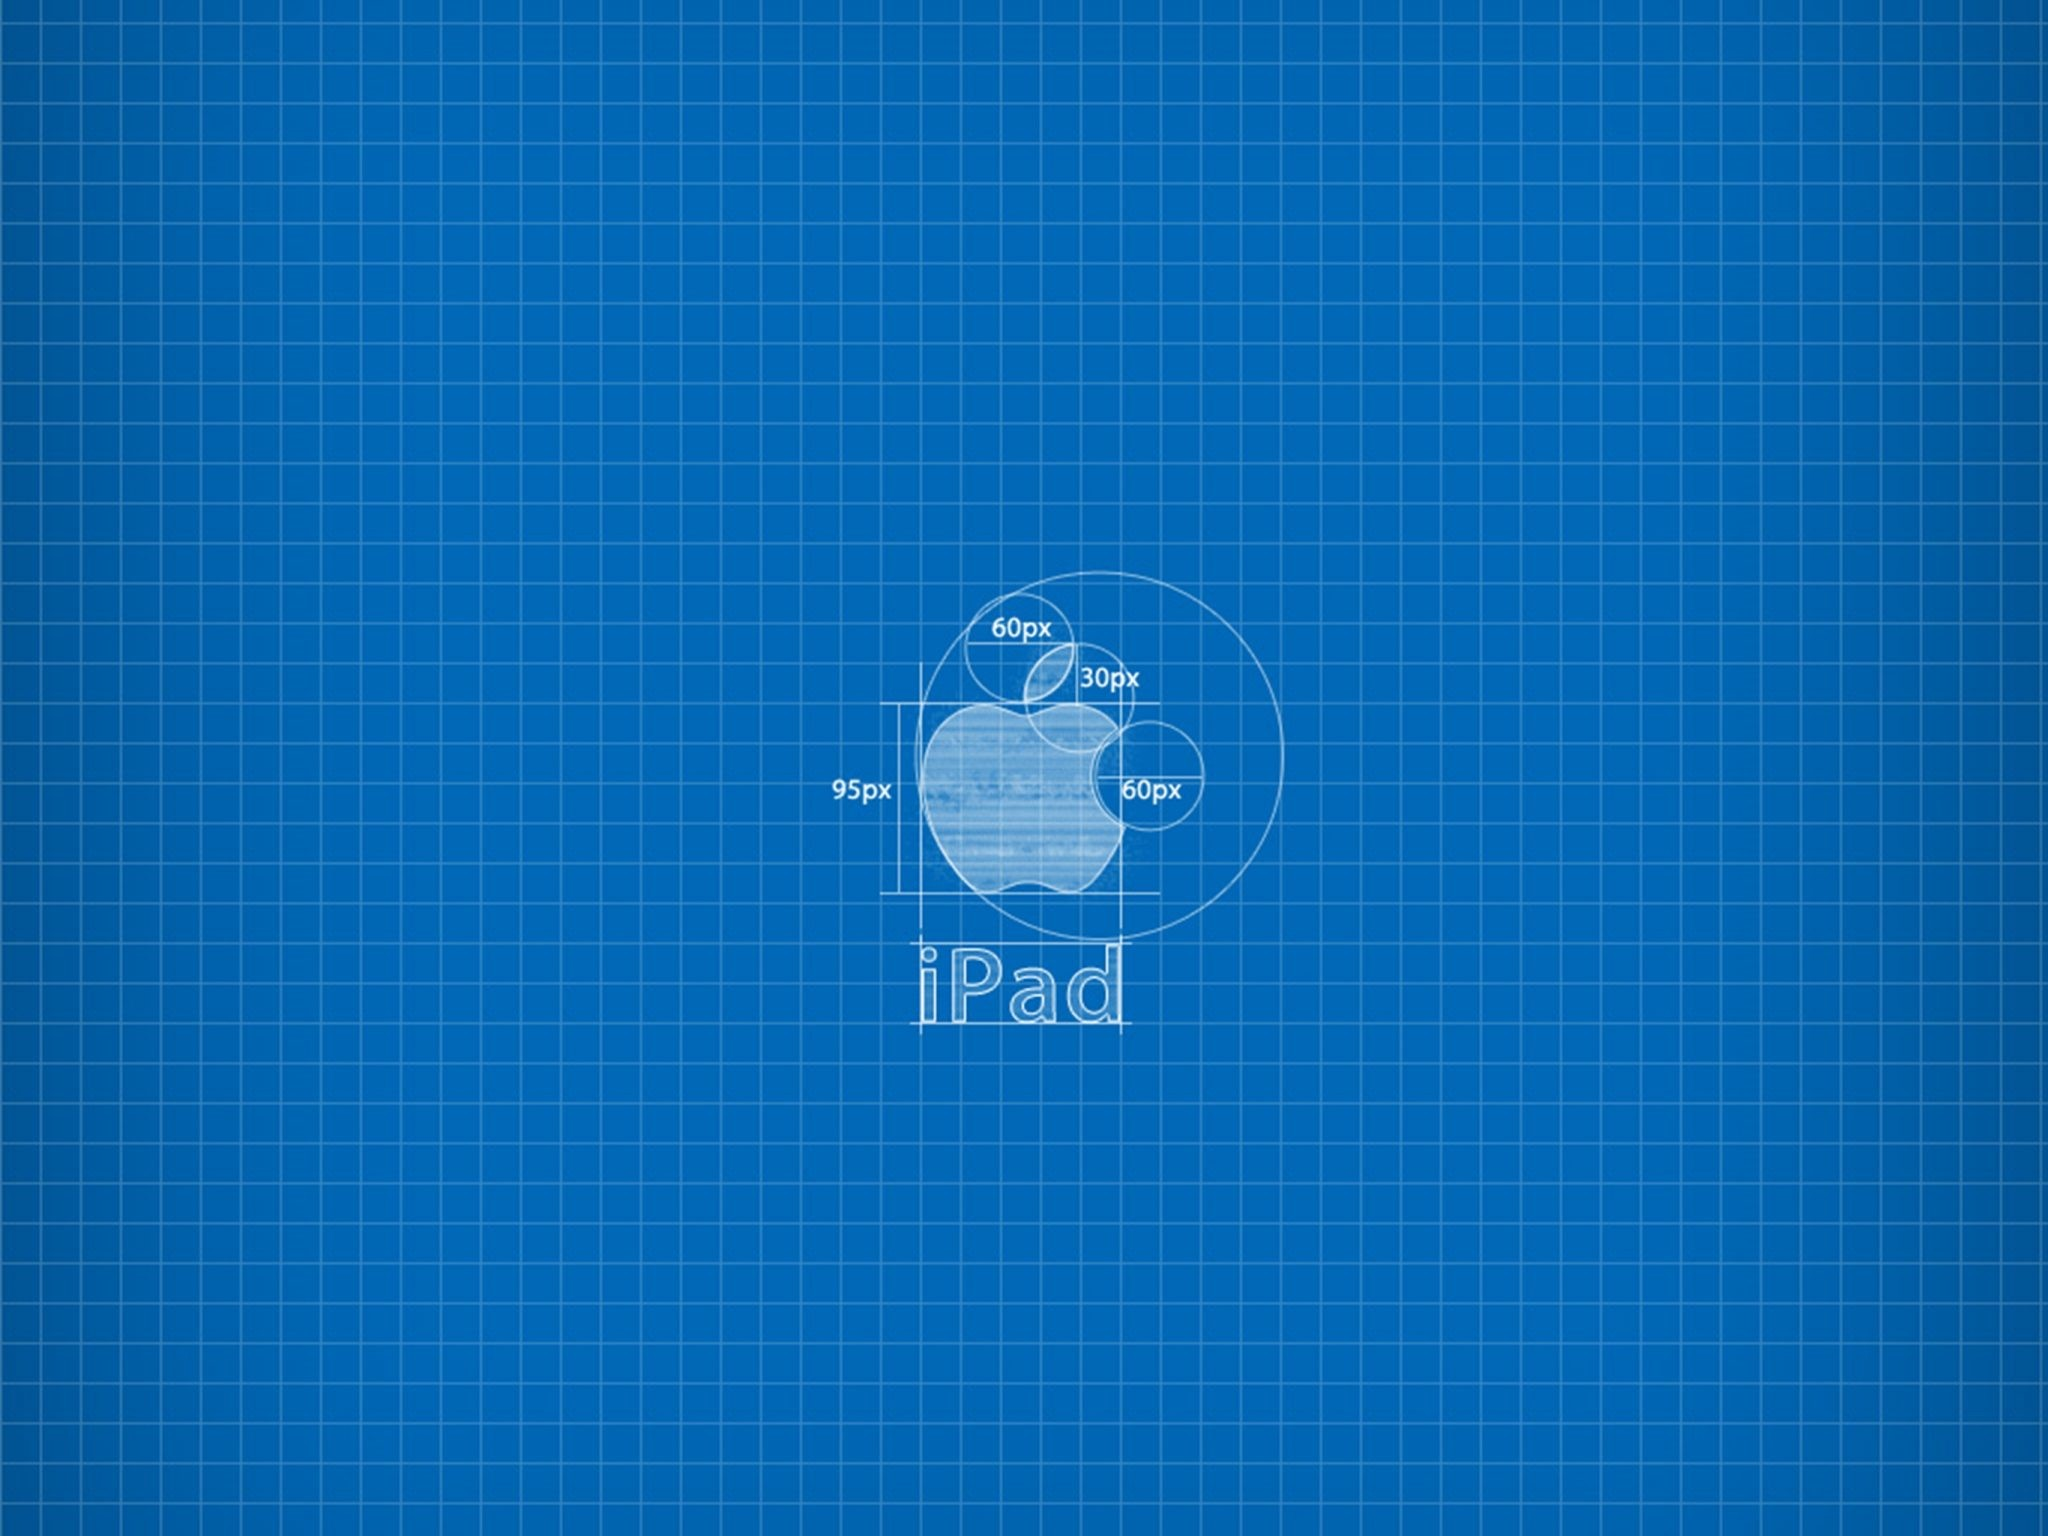 Apple blue wallpaper 76 images 2880x1800 abstract circular blue wallpaper hd wallpapers hd desktop wallpapers amazing hd download apple background wallpapers windows colourfull lovely malvernweather Image collections